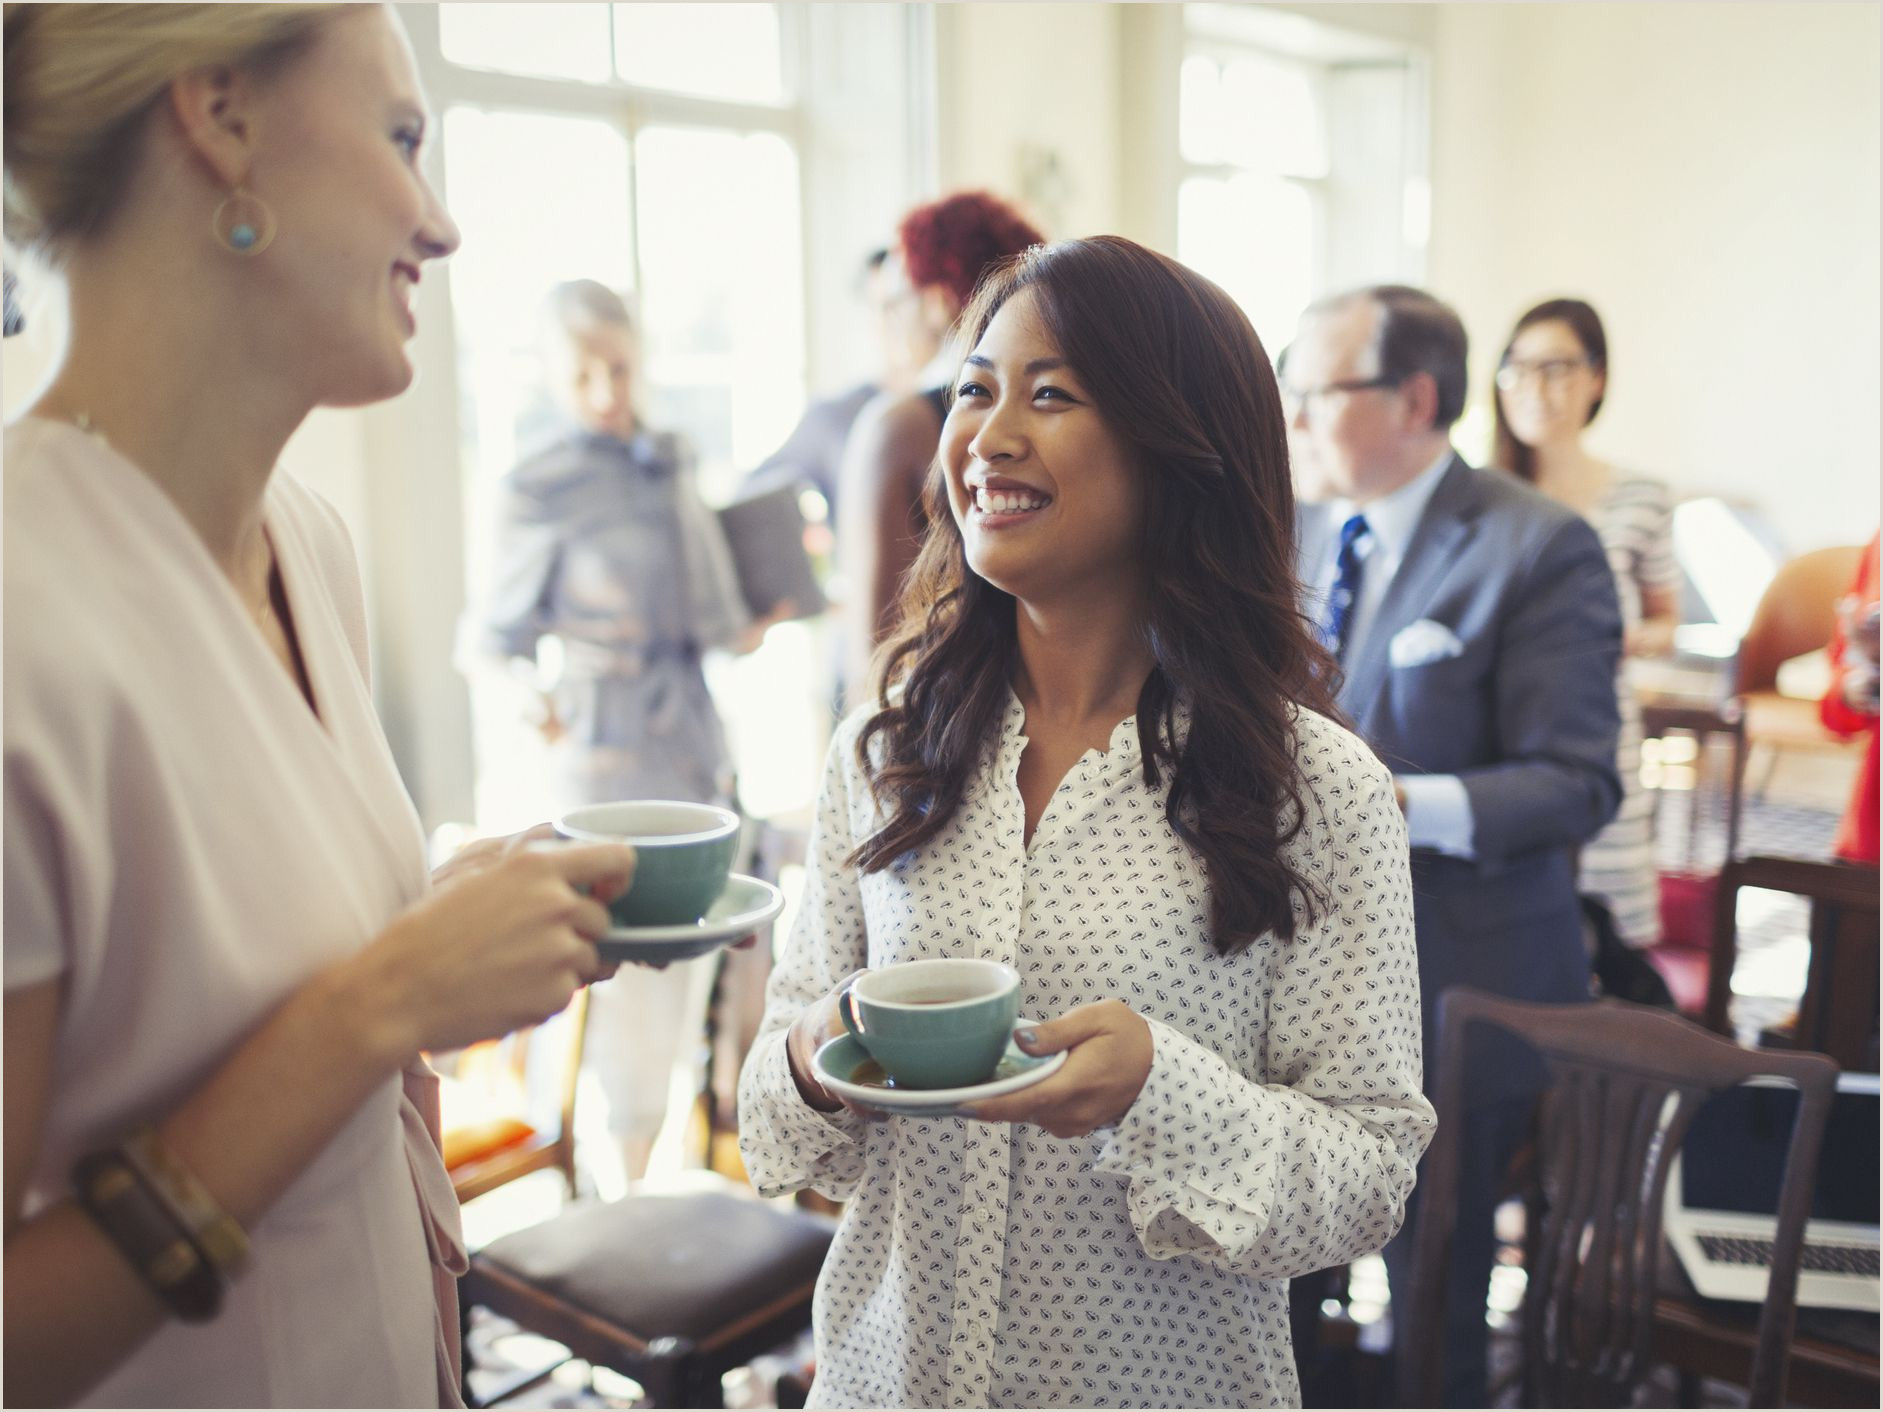 The Most Important Skills for Networking